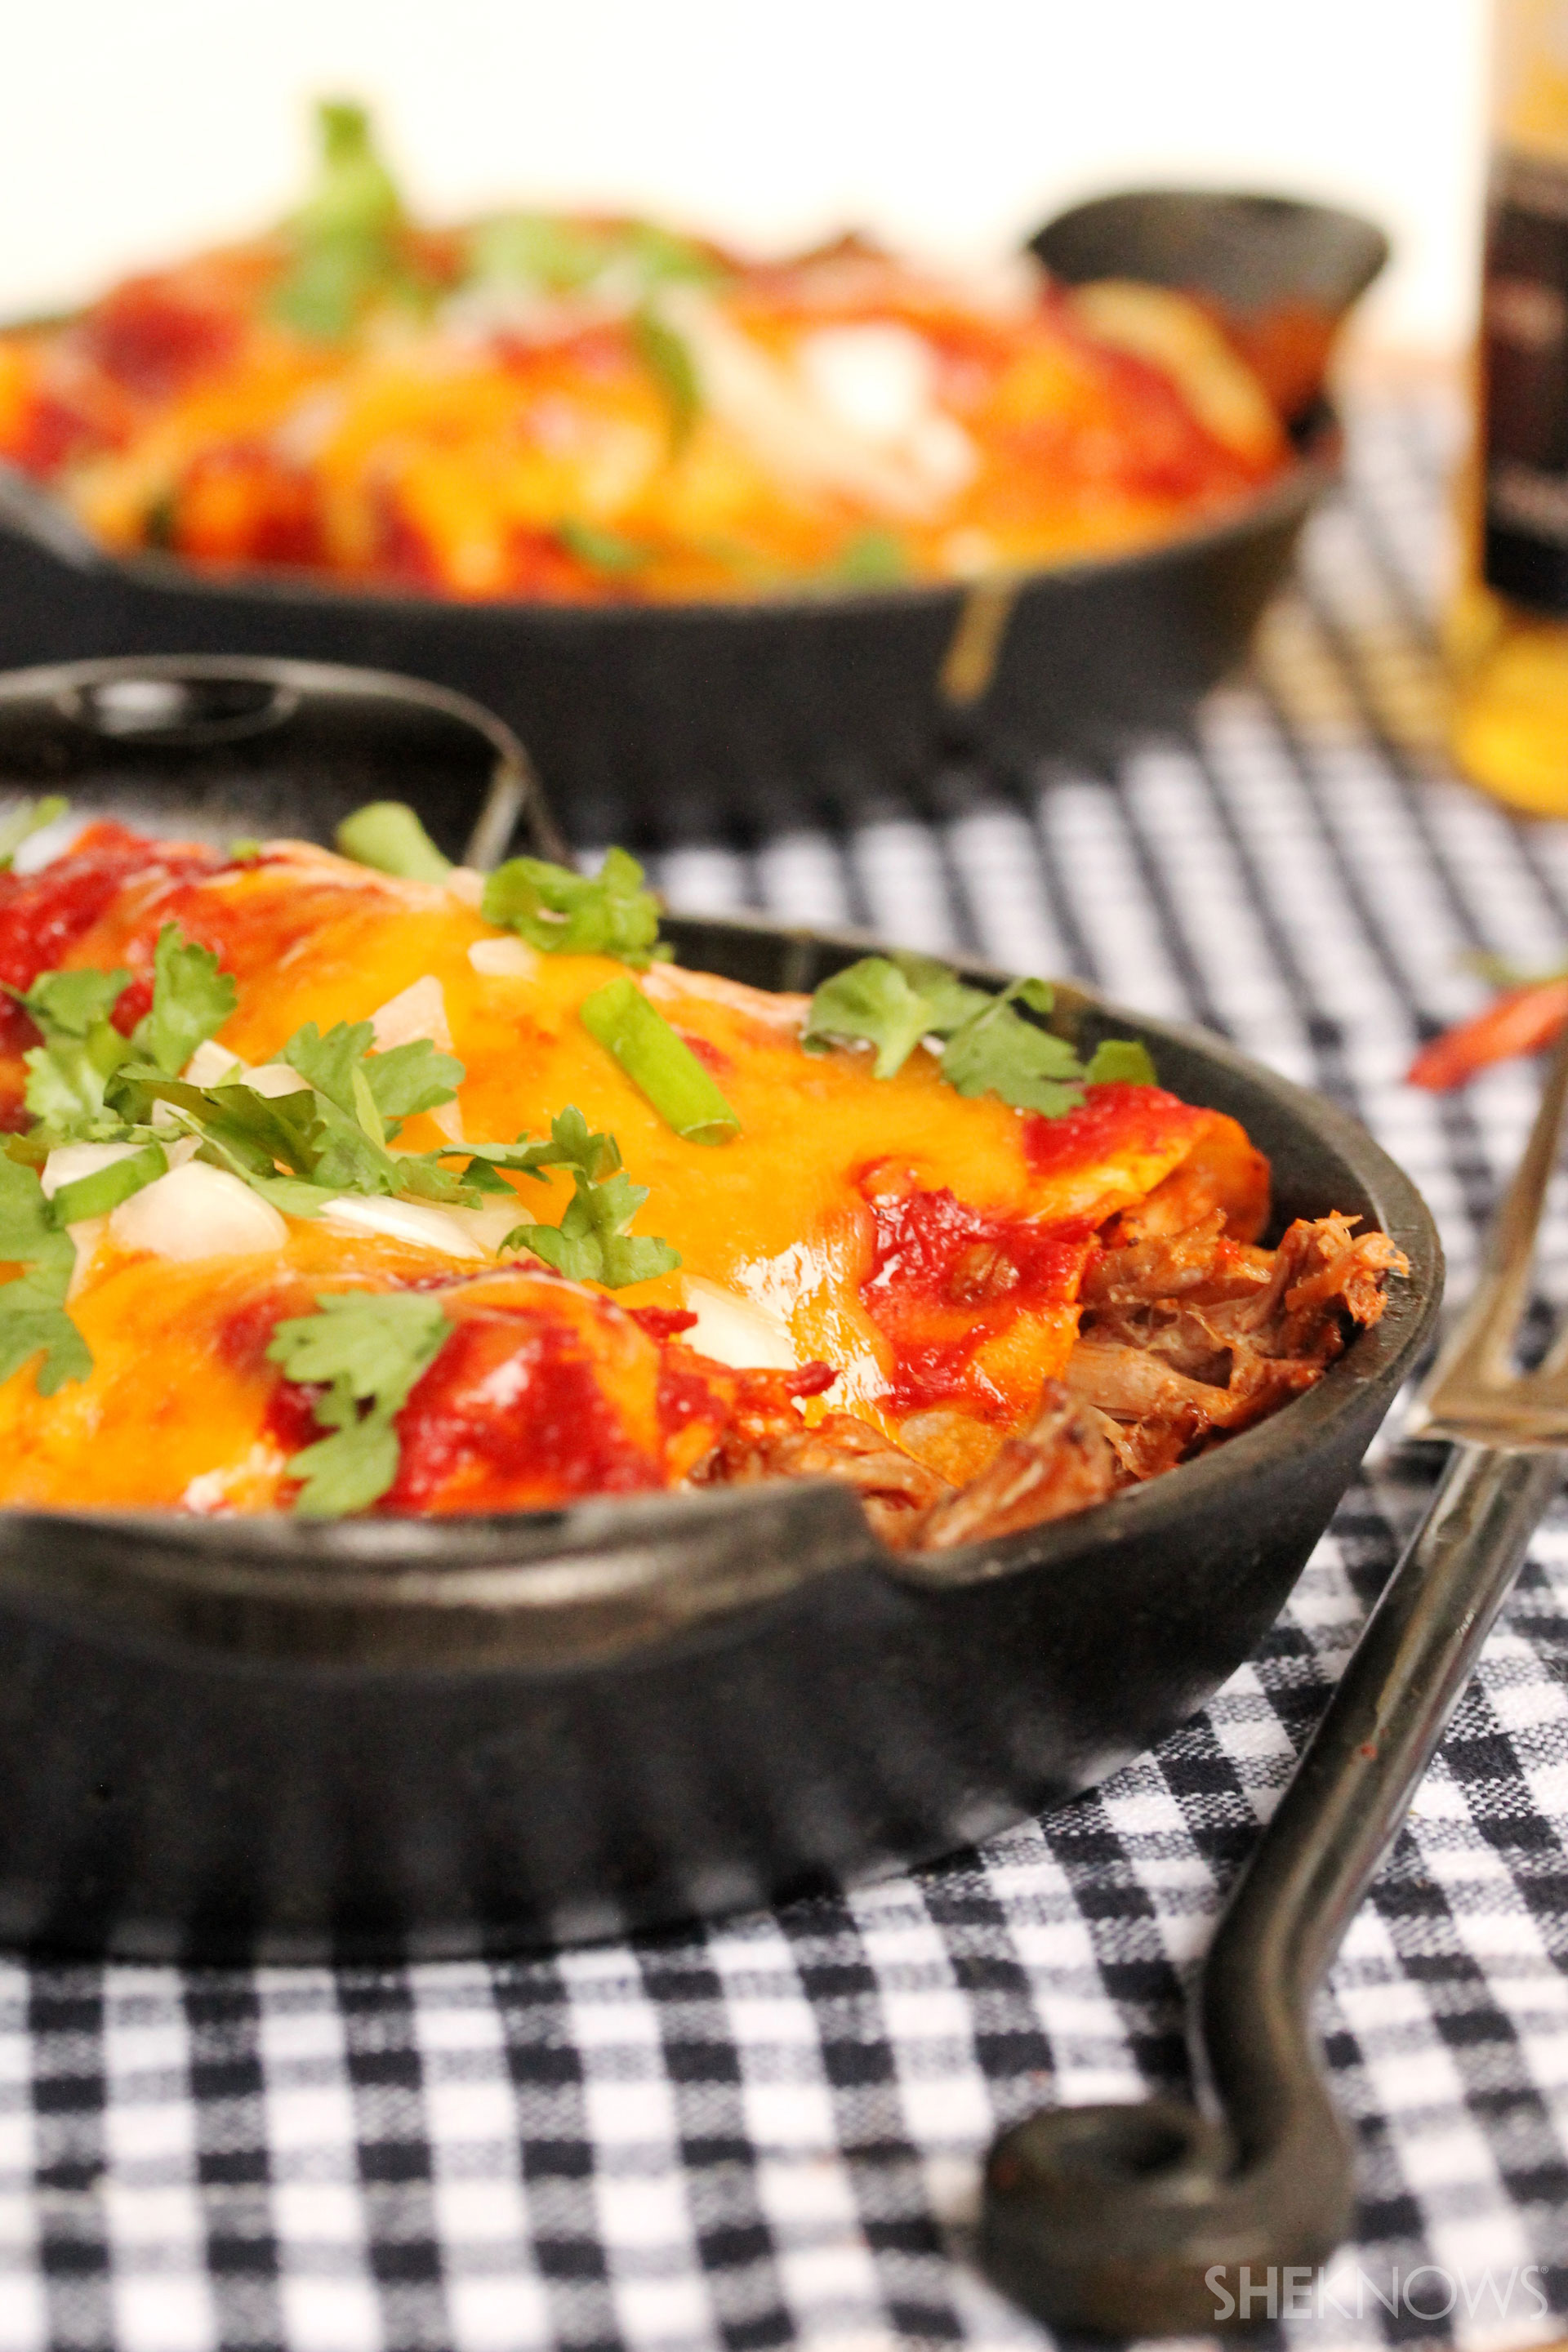 Slow cooker shredded beef burrito enchilada recipe